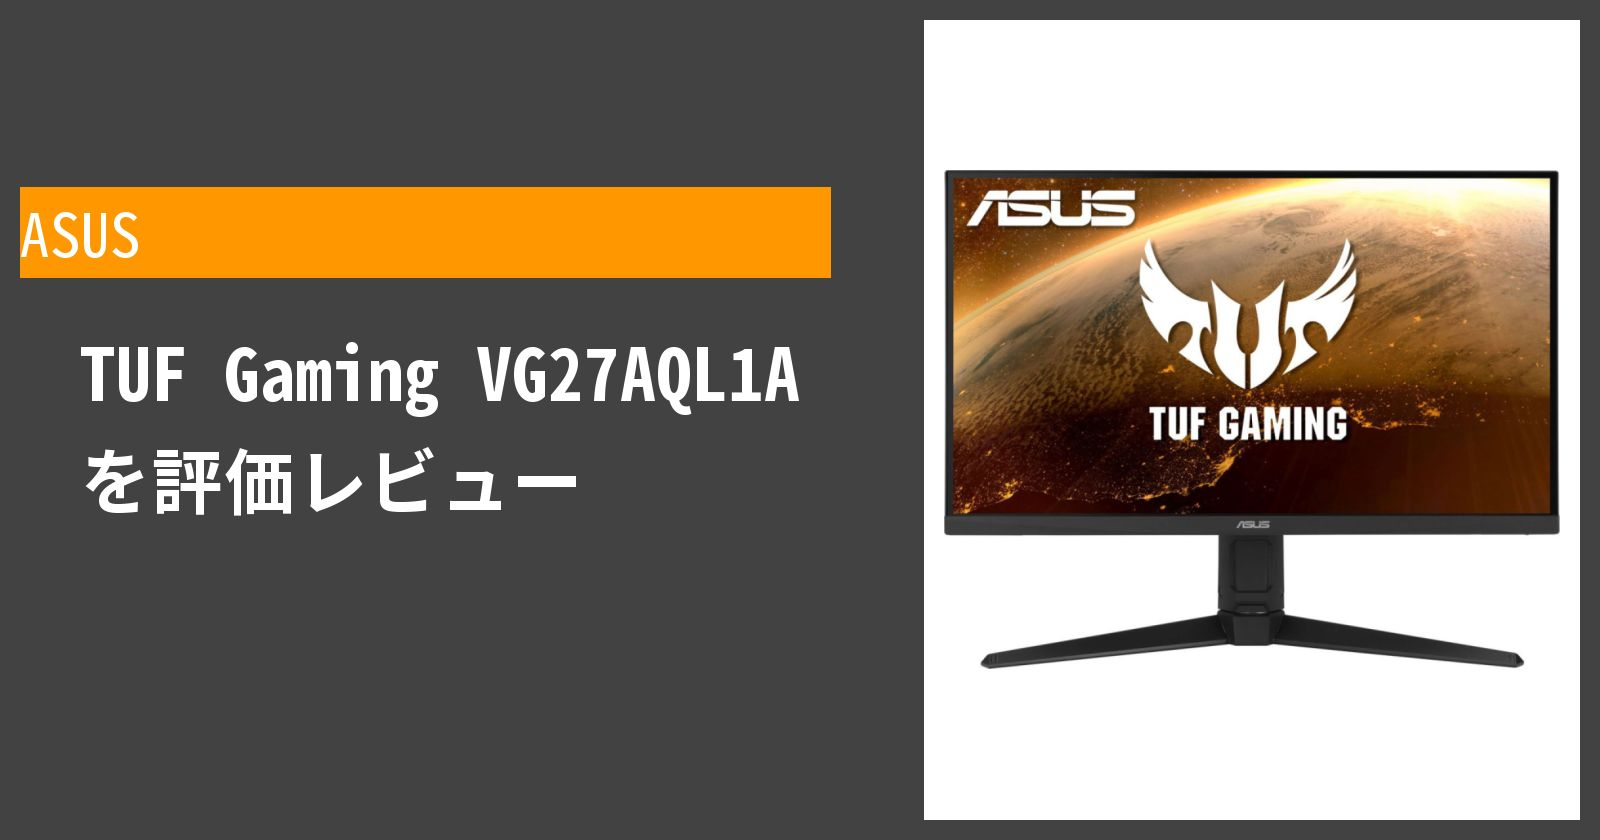 TUF Gaming VG27AQL1Aを徹底評価